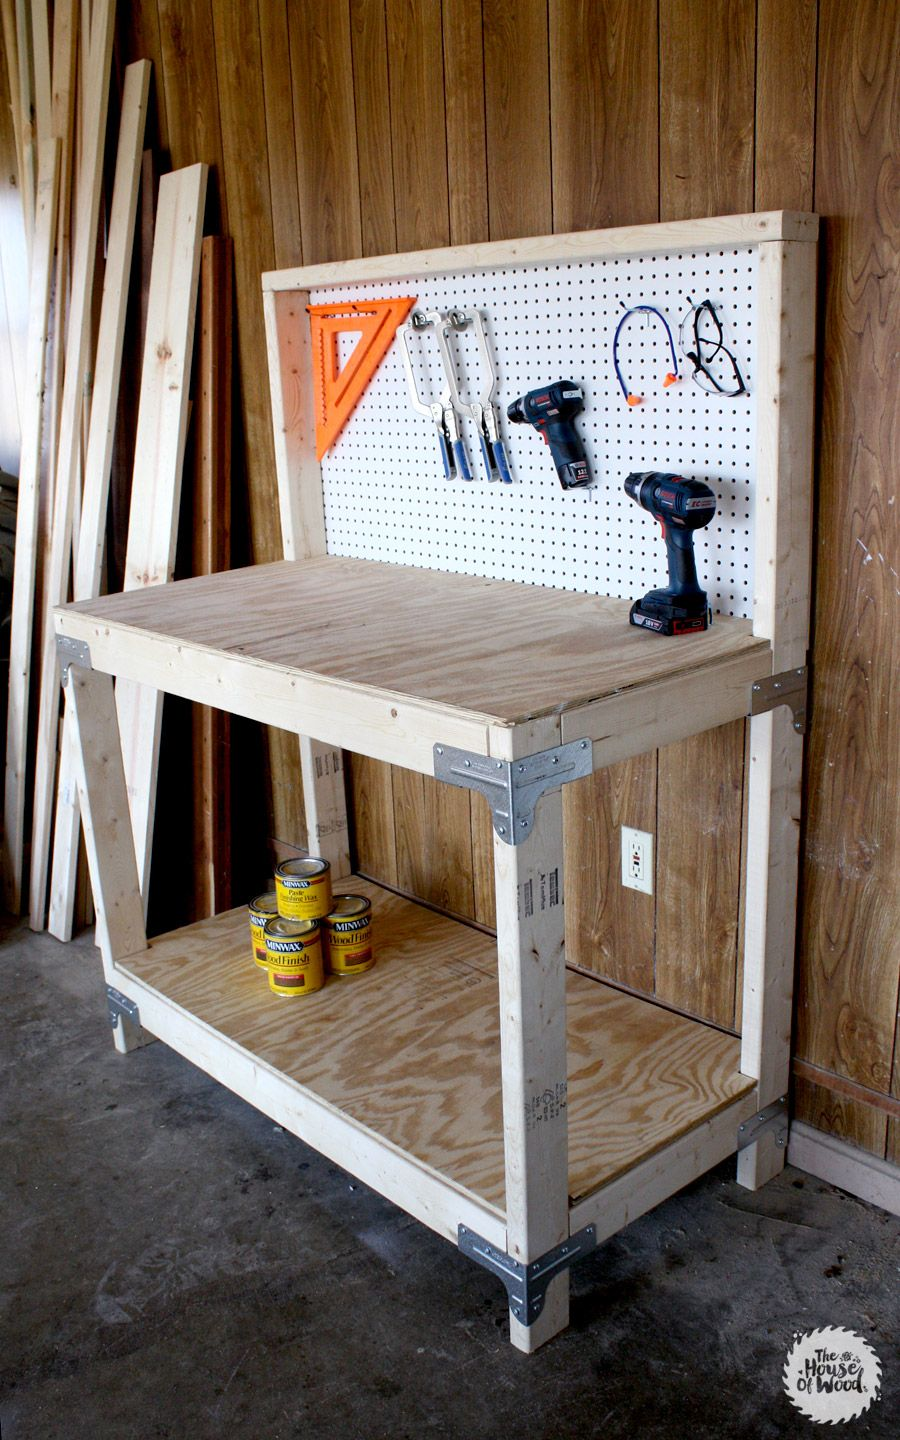 diy workbench with simpson strong tie workbench kit diy build this diy workbench in a few hours with the simpson strong tie workbench kit